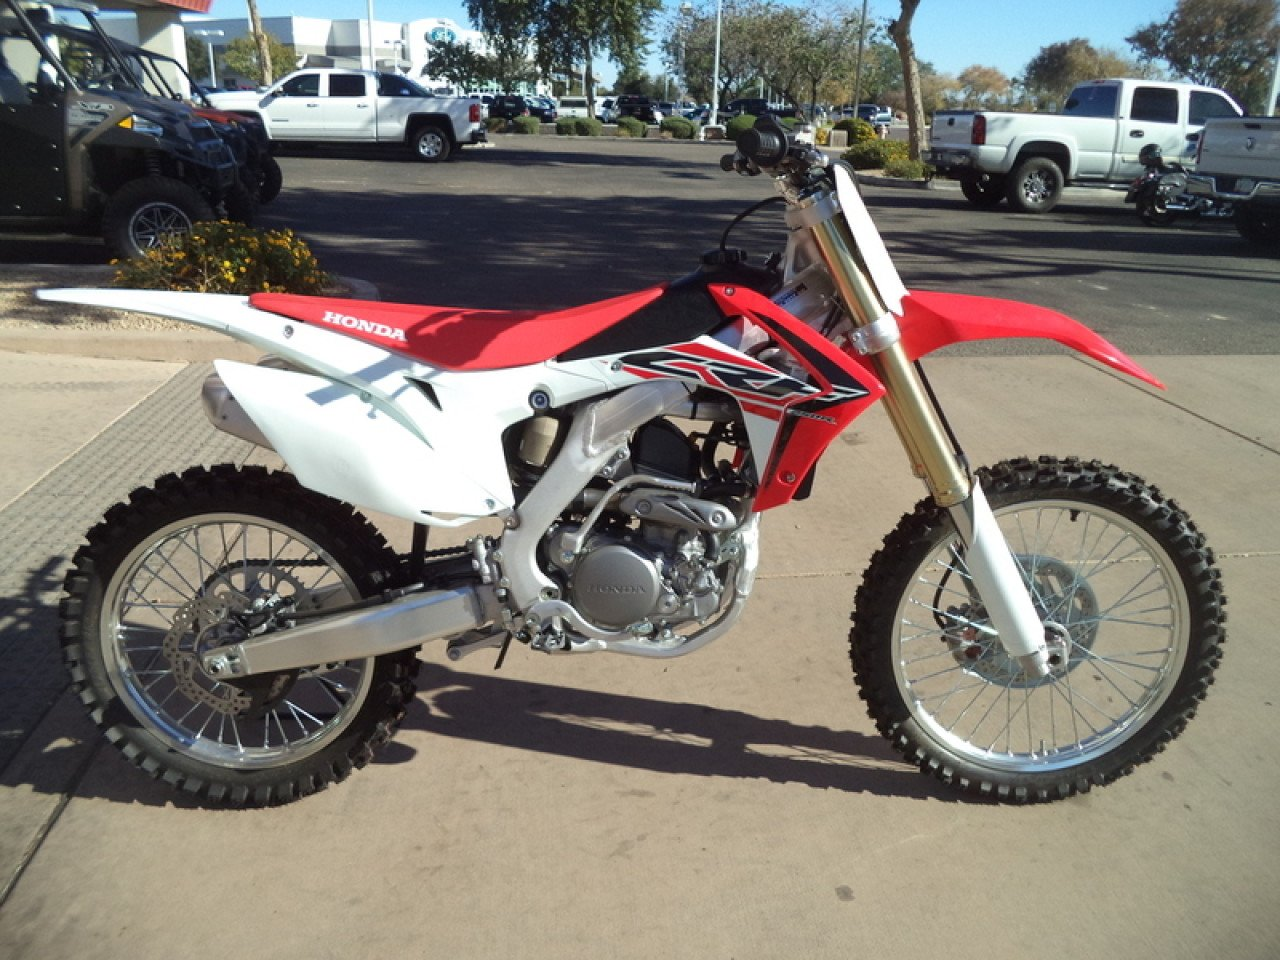 2018 Crf250r Price >> 2017 Honda CRF250R for sale near Goodyear, Arizona 85338 - Motorcycles on Autotrader